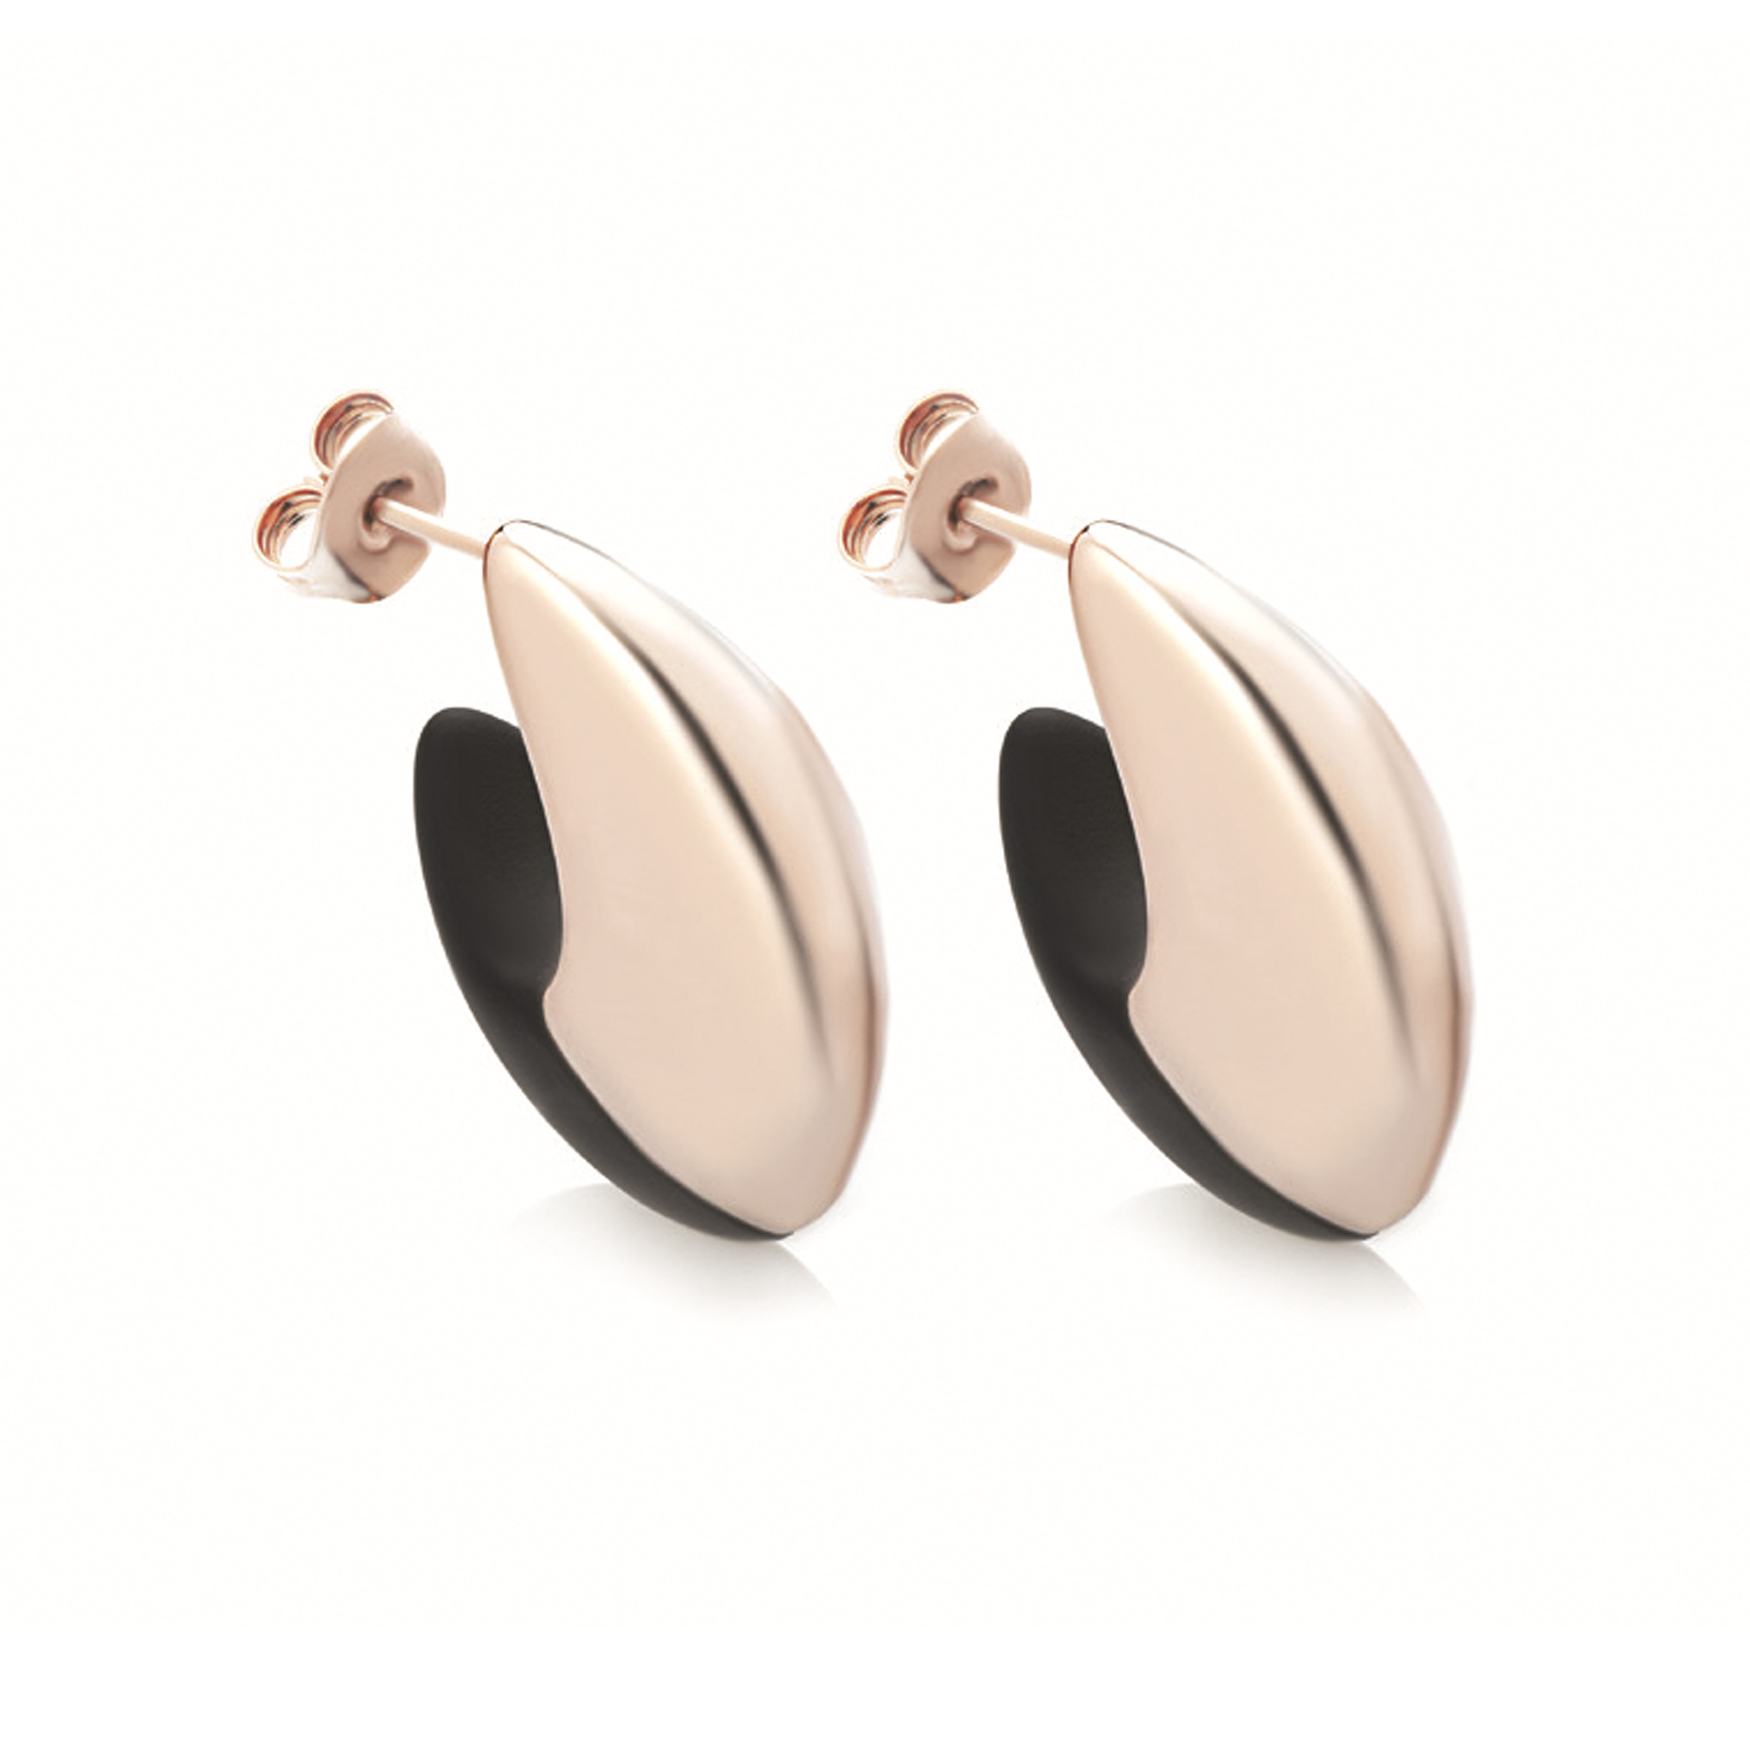 Sensi joyas jewellery Granada silver engagementSILVER EARRINGS COVERED  ROSE GOLD  AND RUBBER